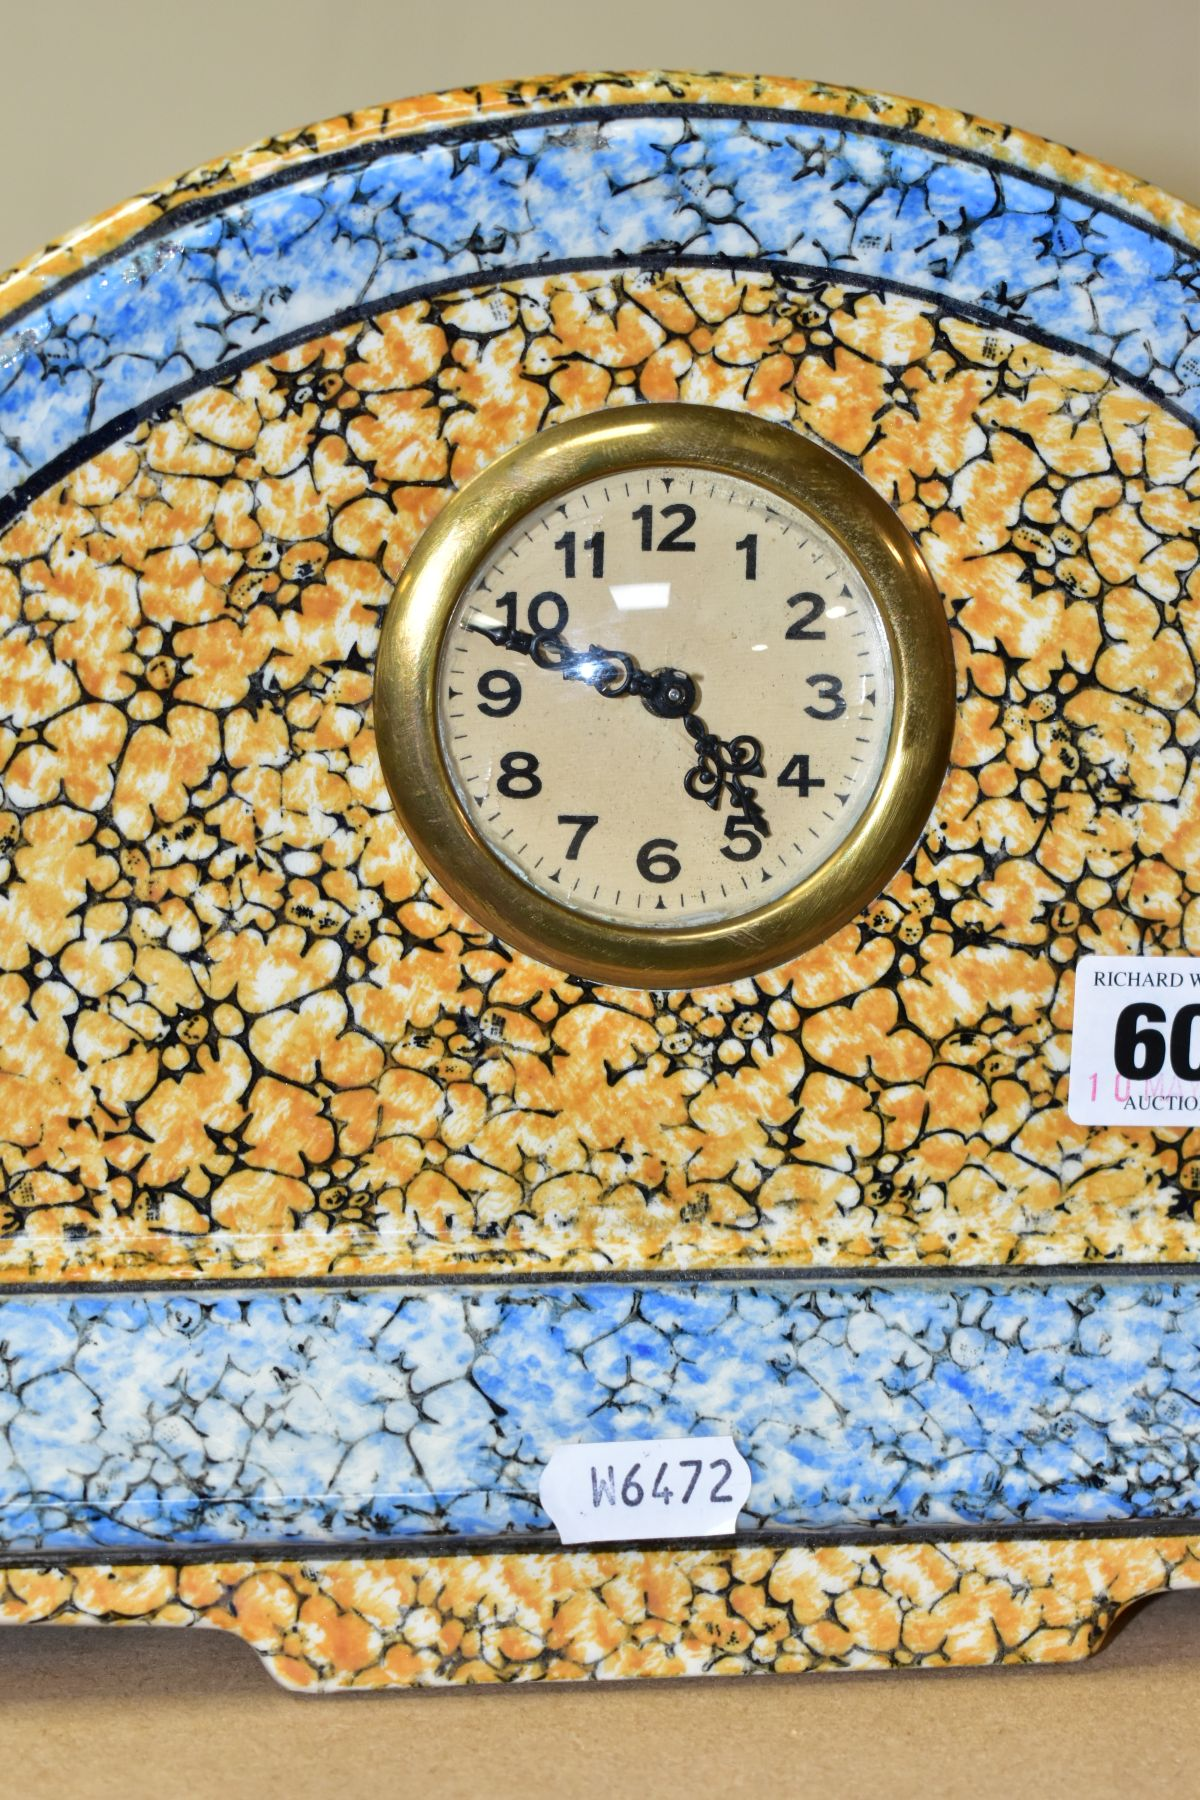 A CONTINENTAL CLOCK GARNITURE, the dome shaped porcelain clock is branded M.W inside a triangle, - Image 5 of 6